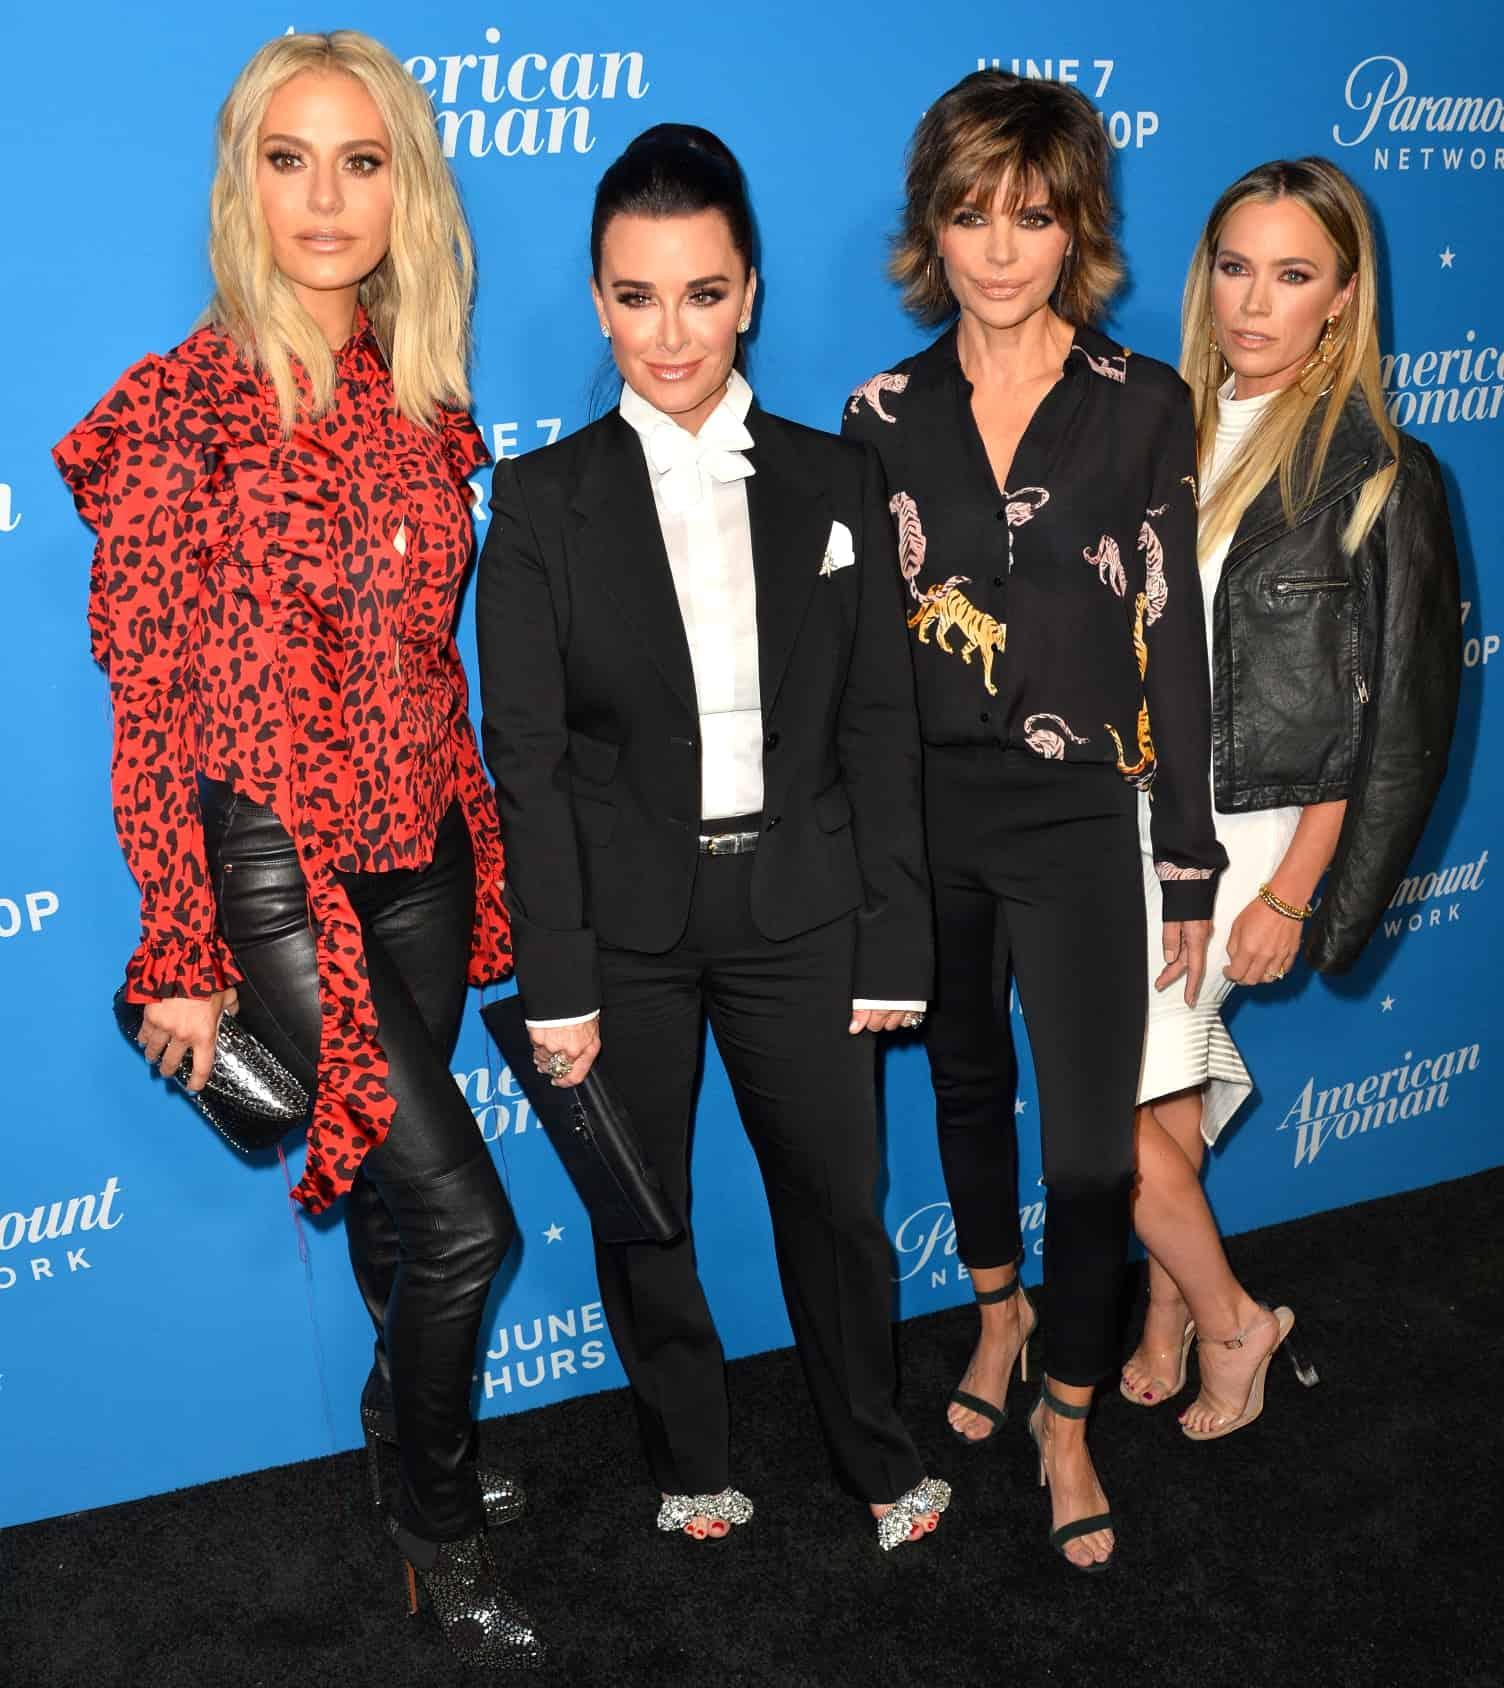 Dorit Kemsley, Kyle Richards, Lisa Rinna & Teddi Mellencamp at the premiere party for American Woman at the Chateau Marmont